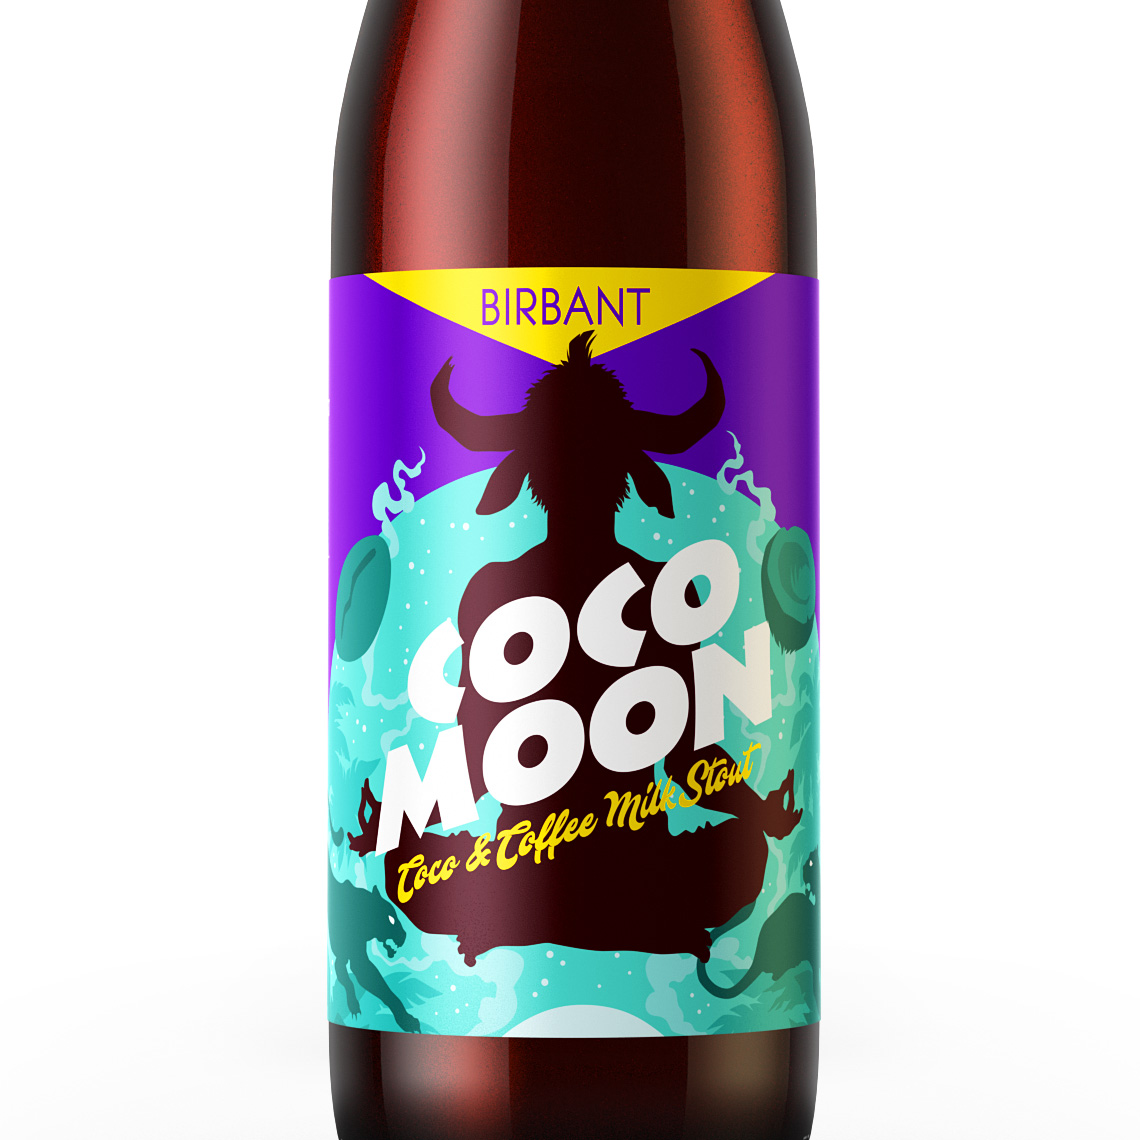 COCO MOON Coffee Milk Stout